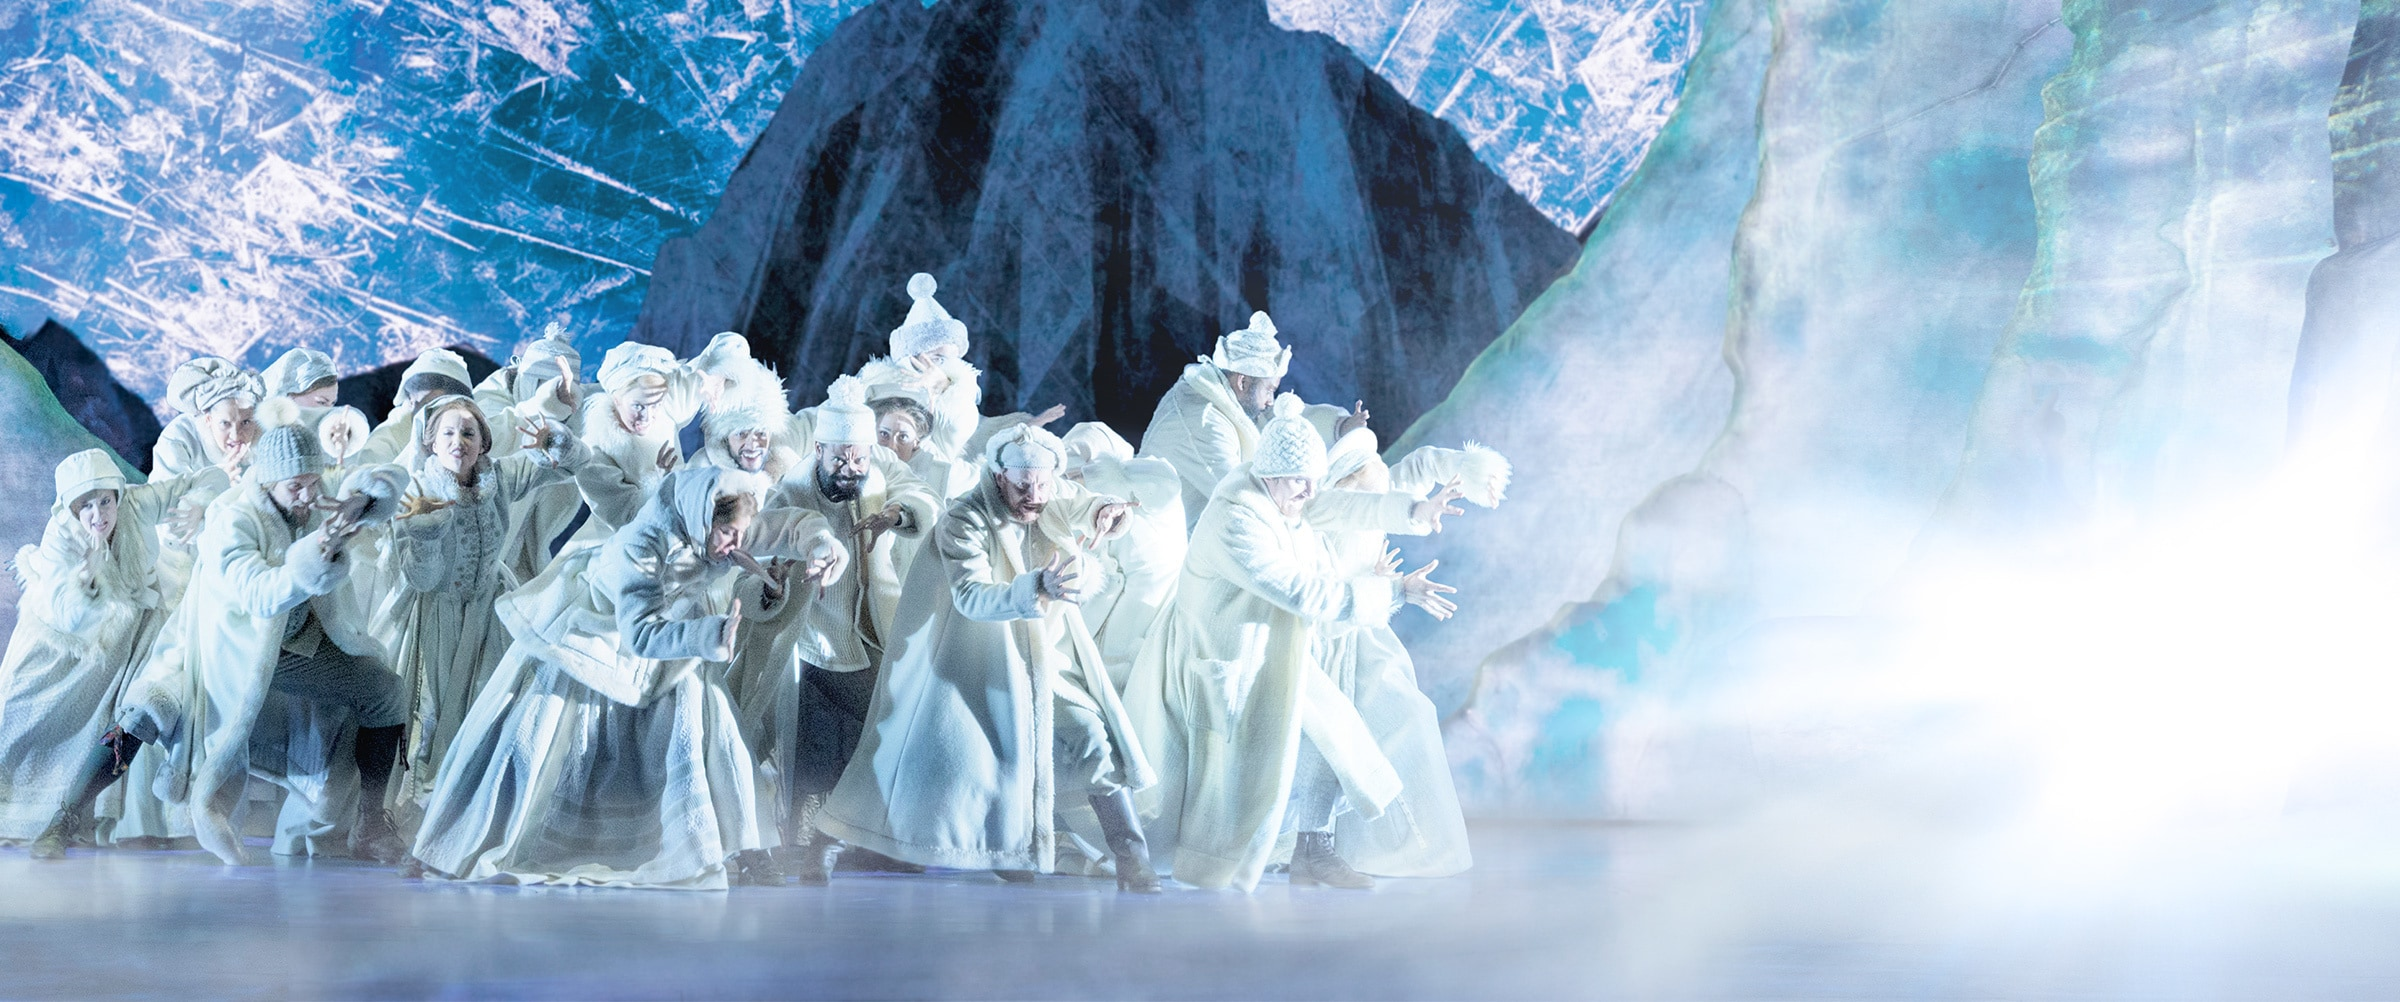 Frozen The Musical | Group | hero